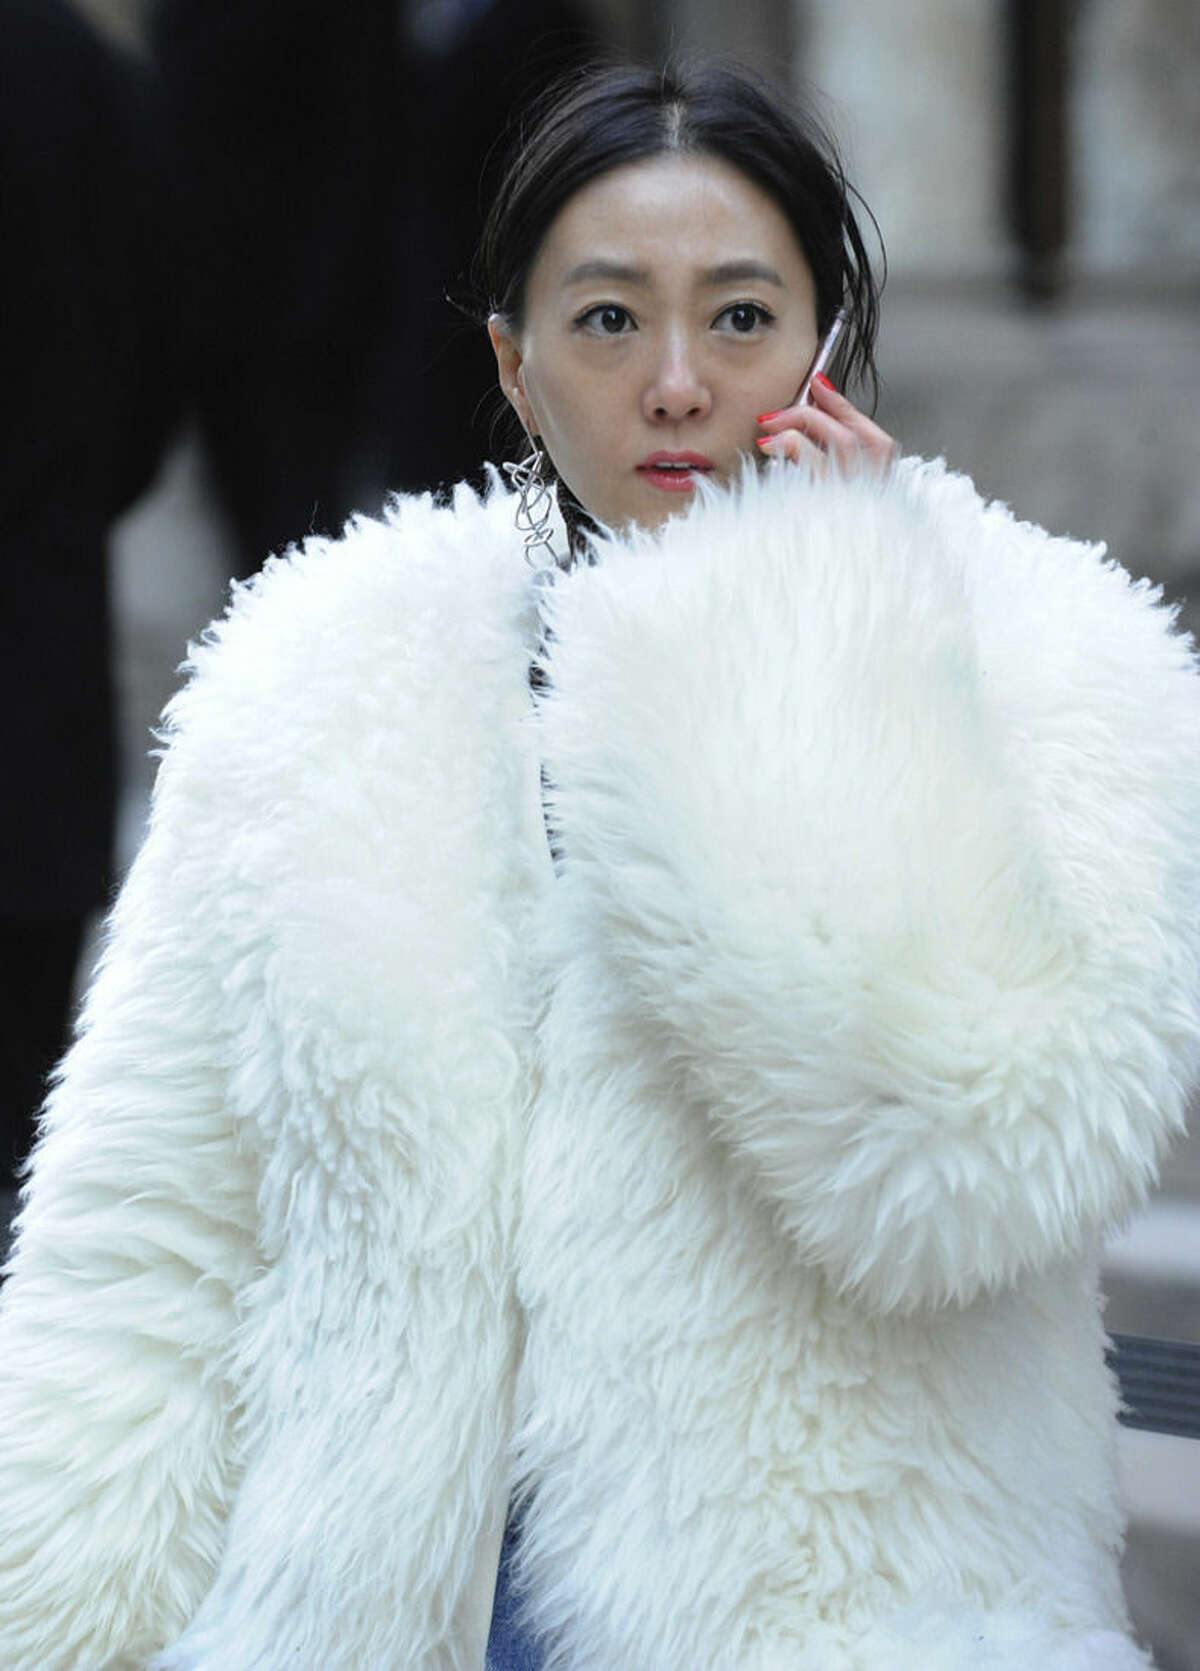 """Ji Young, of South Korea, wears a fur coat outside the Alexander Wang Fall 2016 show during Fashion Week, Saturday, Feb. 13, 2016, in New York. Bitter temperatures and biting winds had much of the northeastern United States bundling up for the some of the worst cold of the winter - a snap so bad it forced an ice festival in Central Park to cancel and caused an Interstate pileup that killed three. """"These temperatures can be life threatening - especially for seniors, infants and people with medical conditions,"""" New York City Mayor Bill de Blasio said. Stay indoors and take care of each other, he counseled. (AP Photo/Diane Bondareff)"""